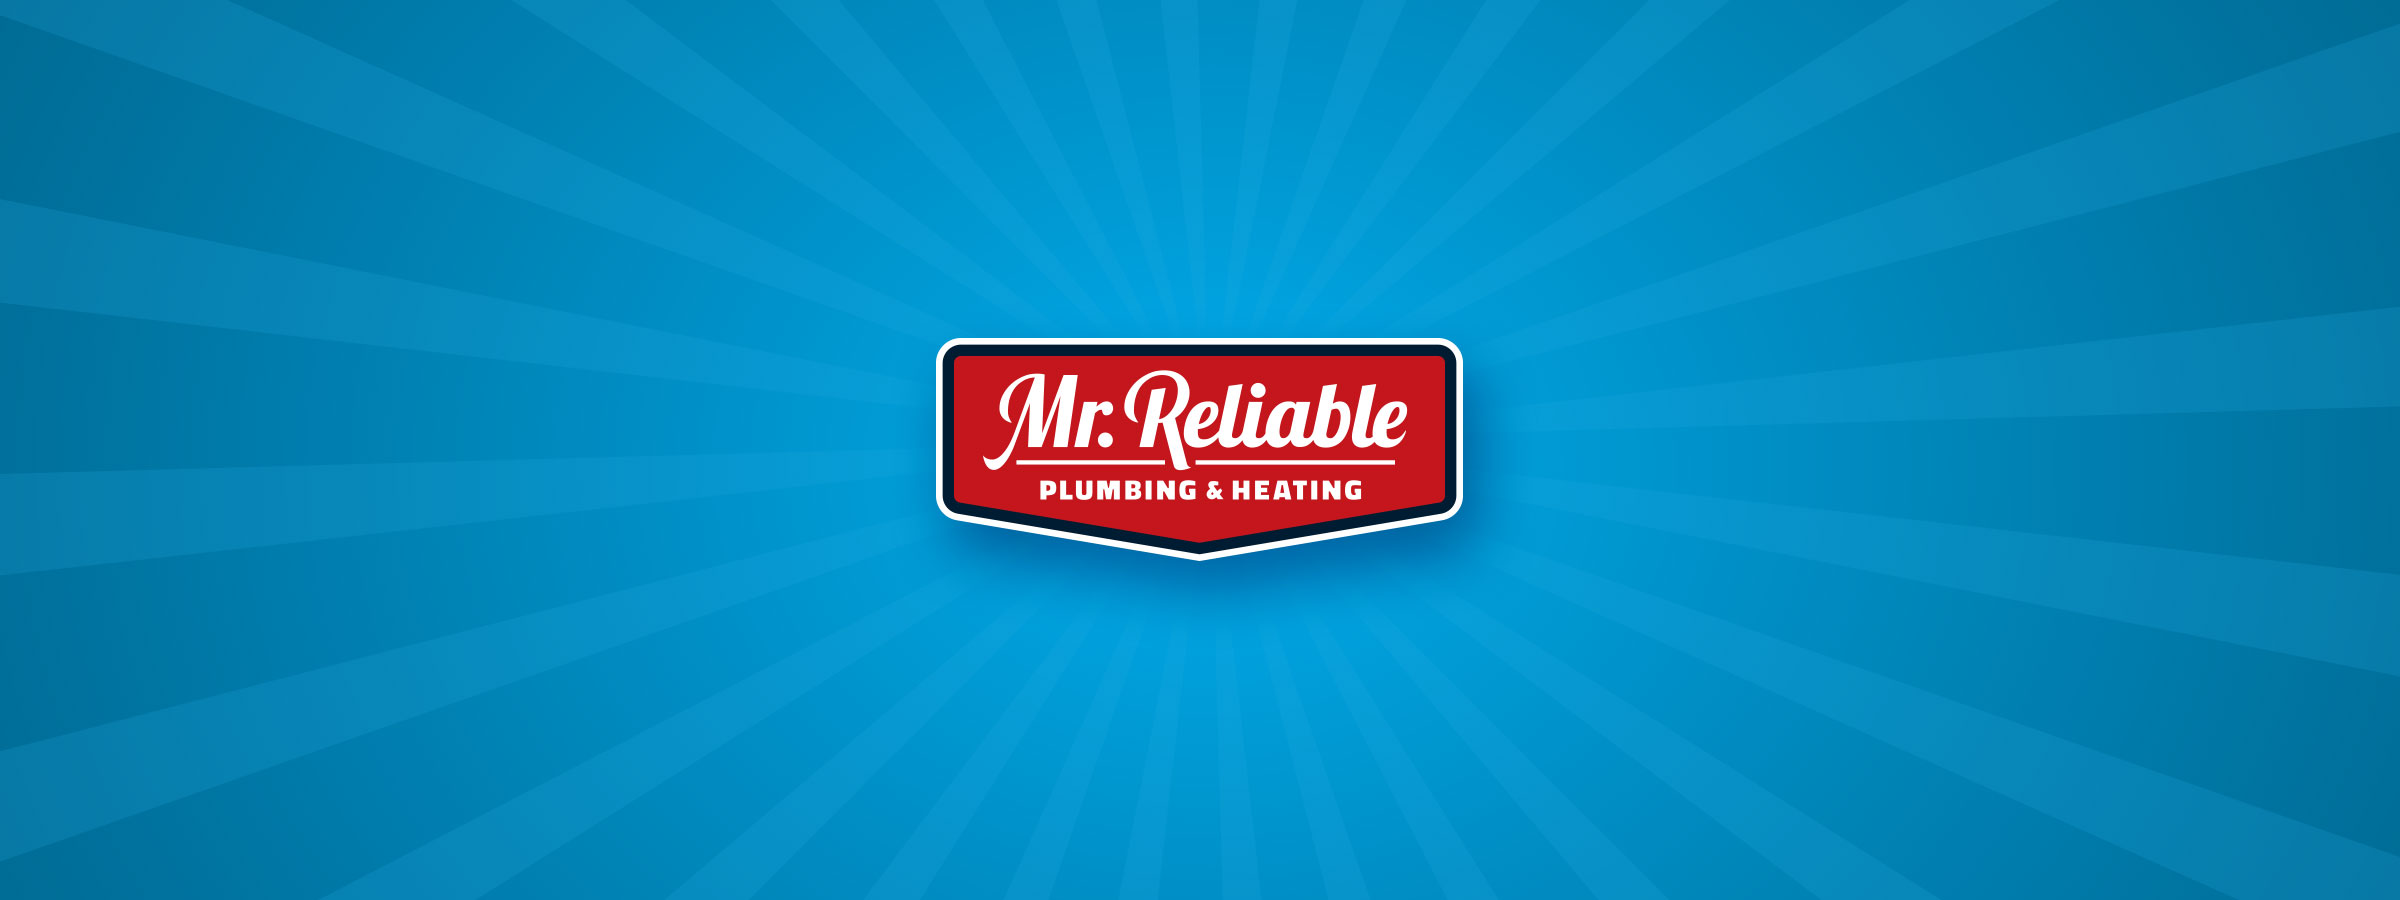 Mr.-Reliable-Branding-6-simplified-logo